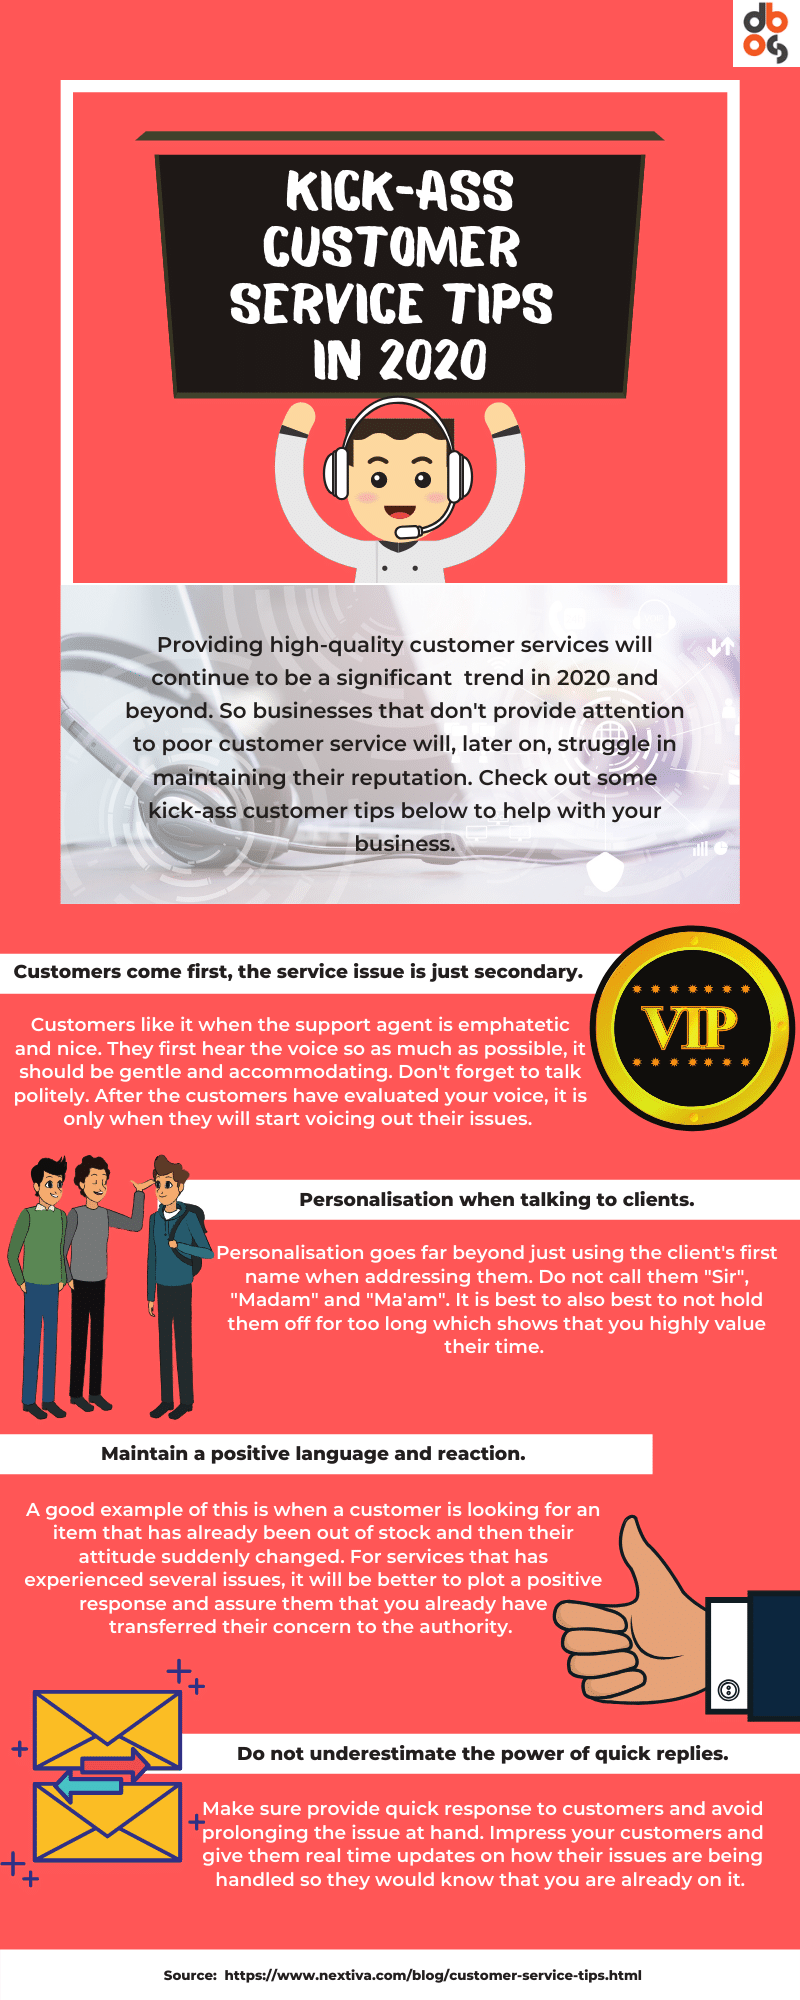 Providing highquality customer service will continue to